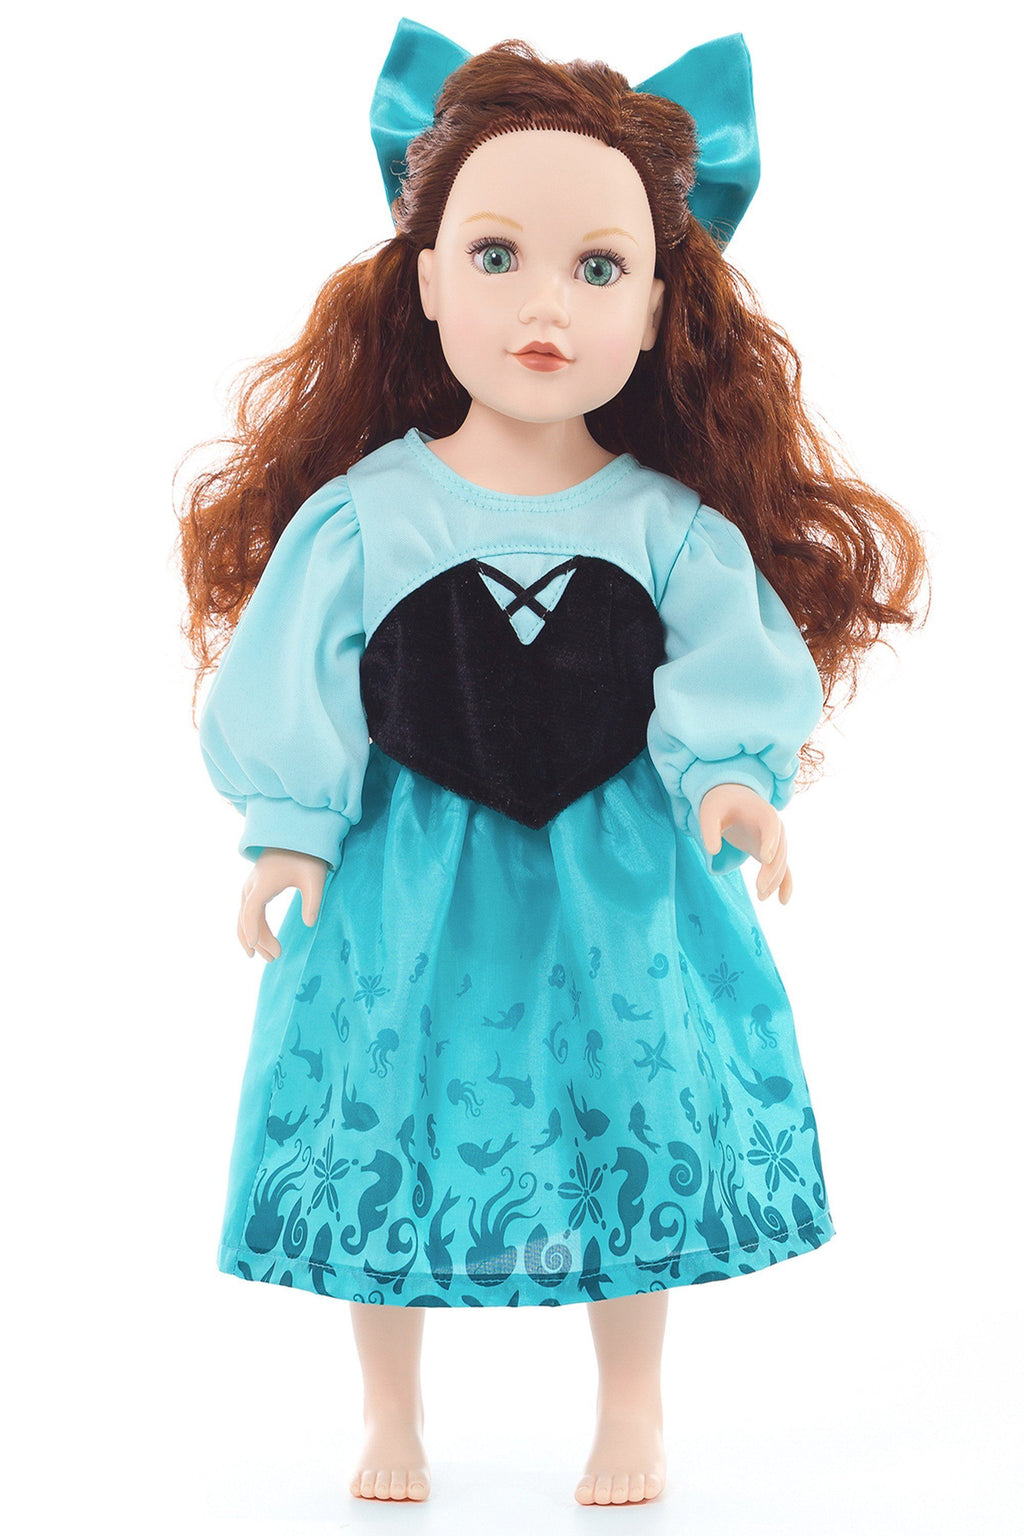 Doll Dresses & Accessories - Doll Dress Mermaid Day Dress With Hair Bow